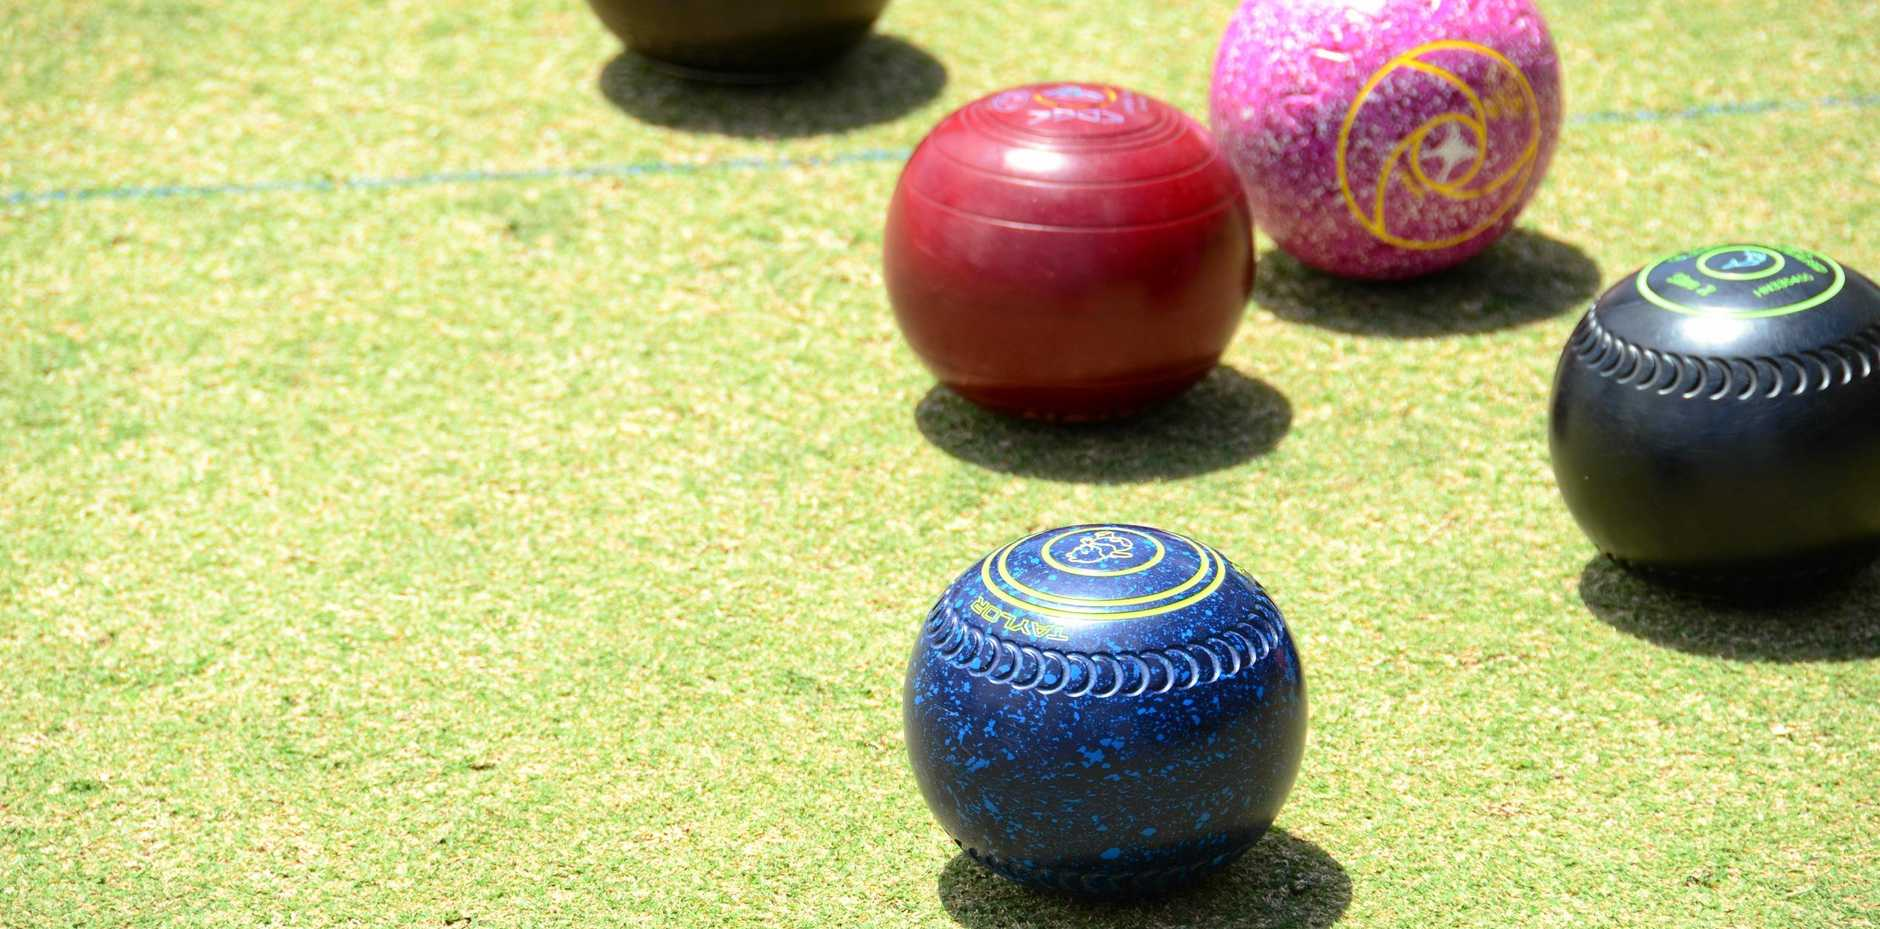 CALLING FOR PLAYERS: Players are invited to join indoor bowls competitions in Wondai and Kingaroy.